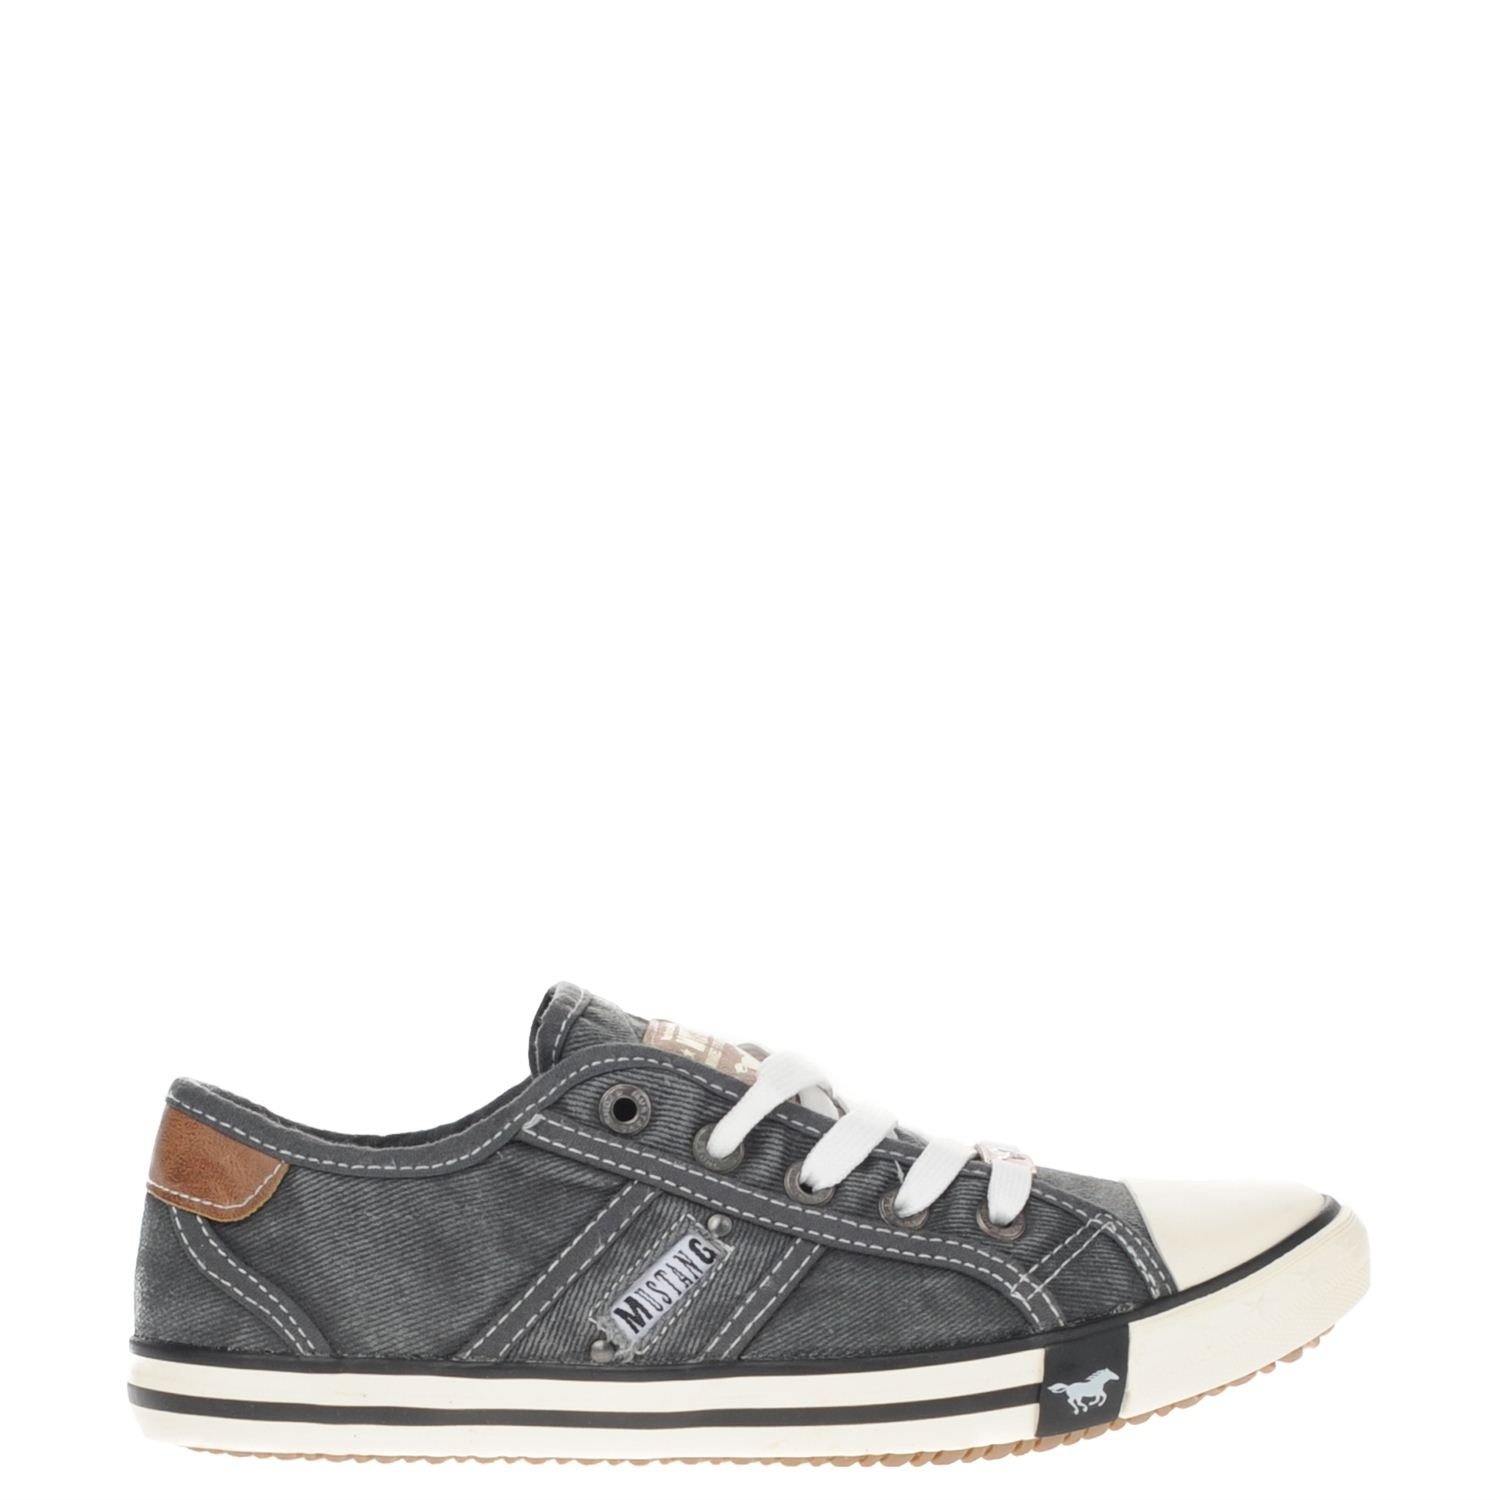 Chaussures Gris Chaussure Mustang Mustang À Lacets wwHgbCs5